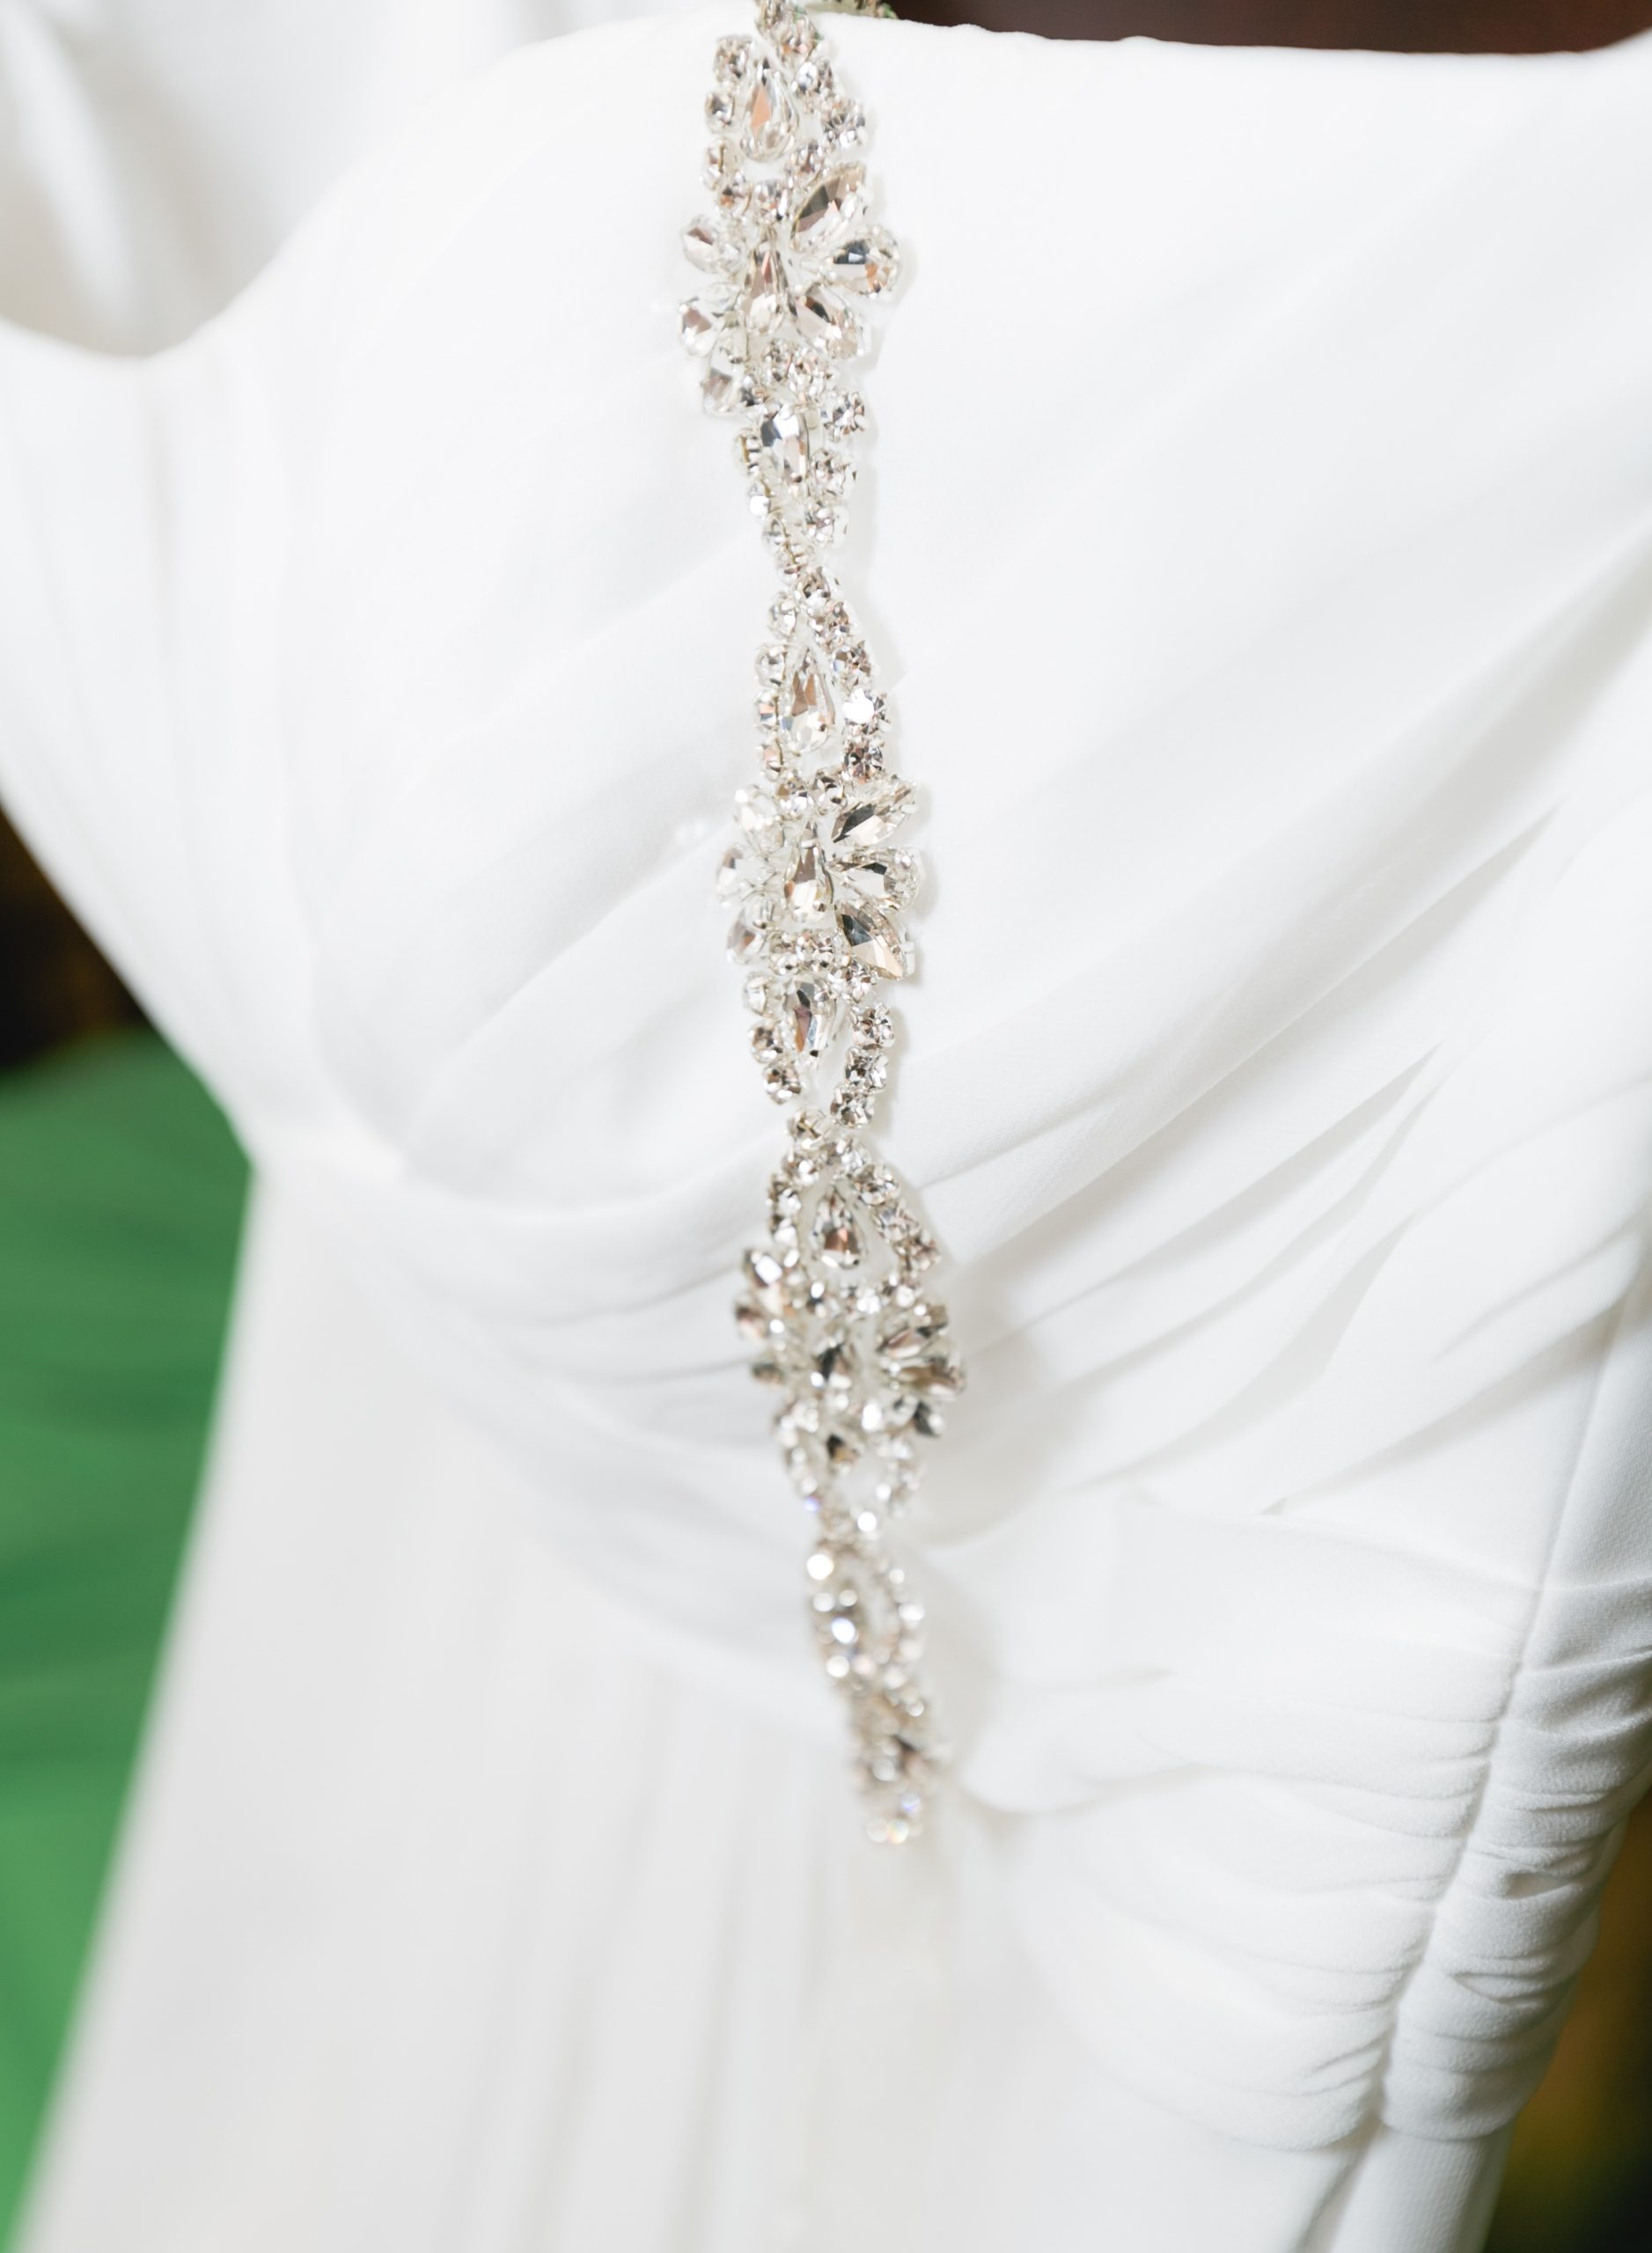 Wedding Dress and Sash Detail Shot